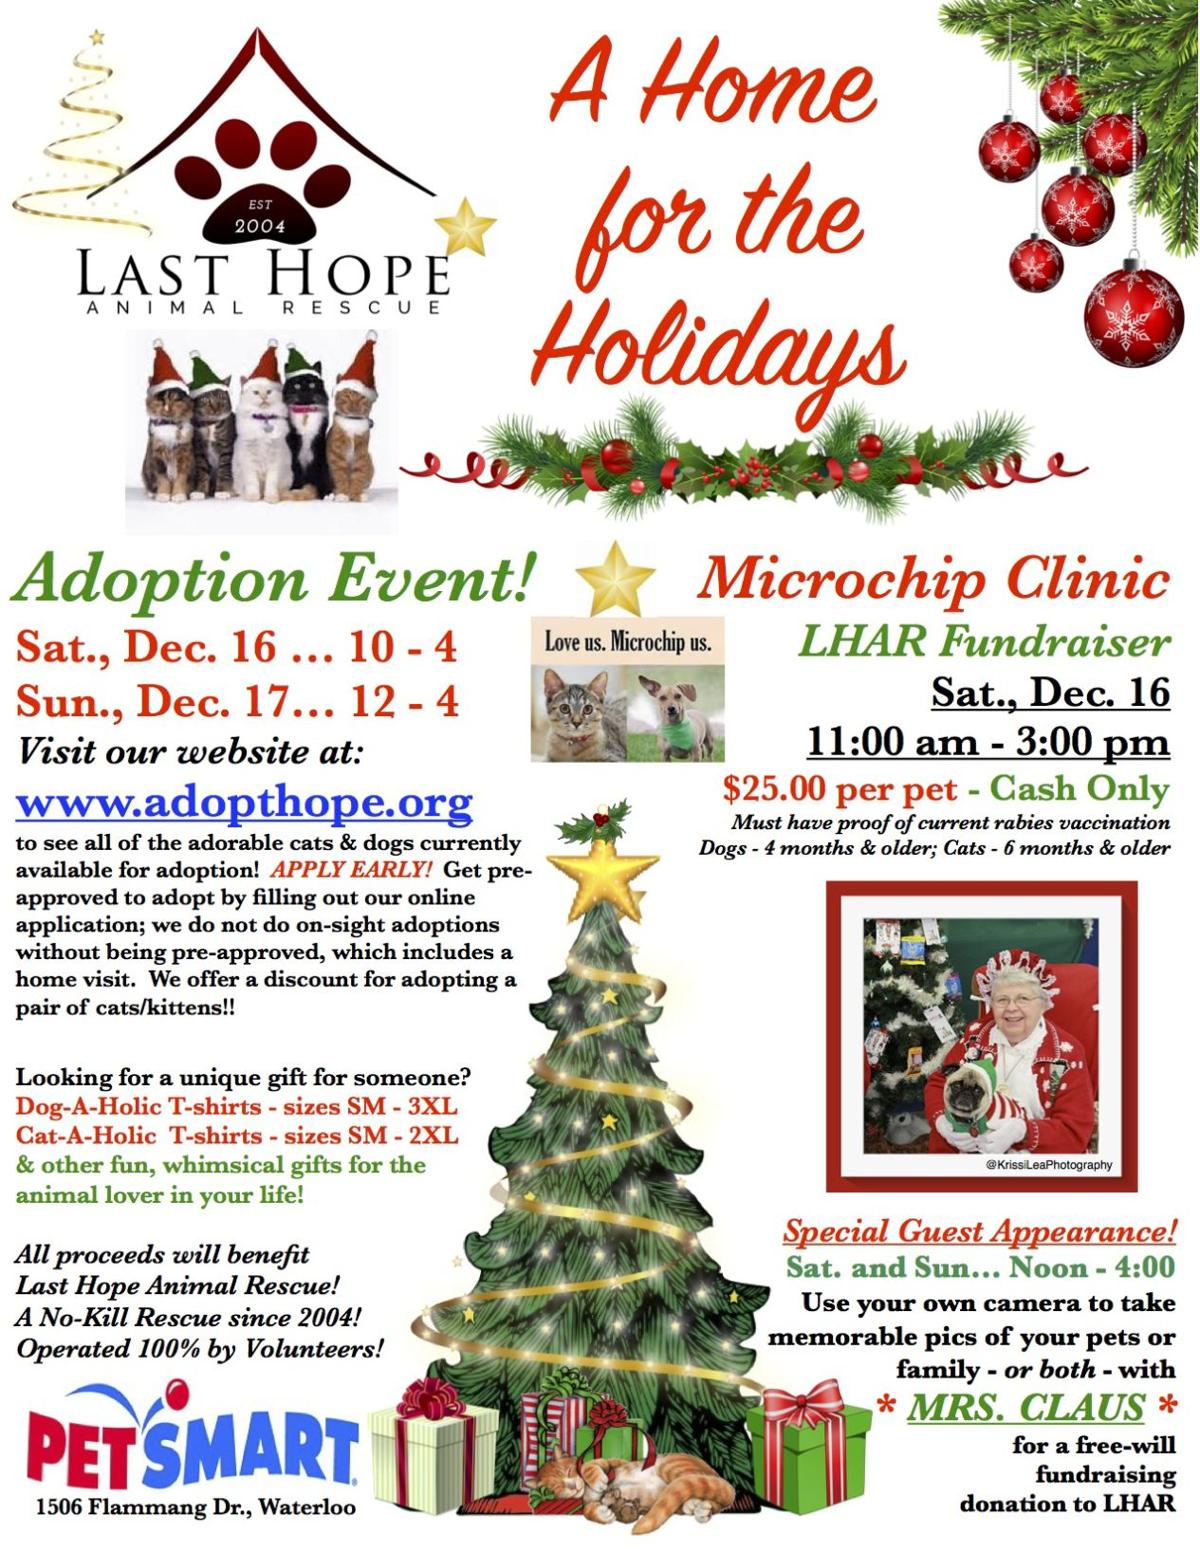 A Home for the Holidays Adoption Event